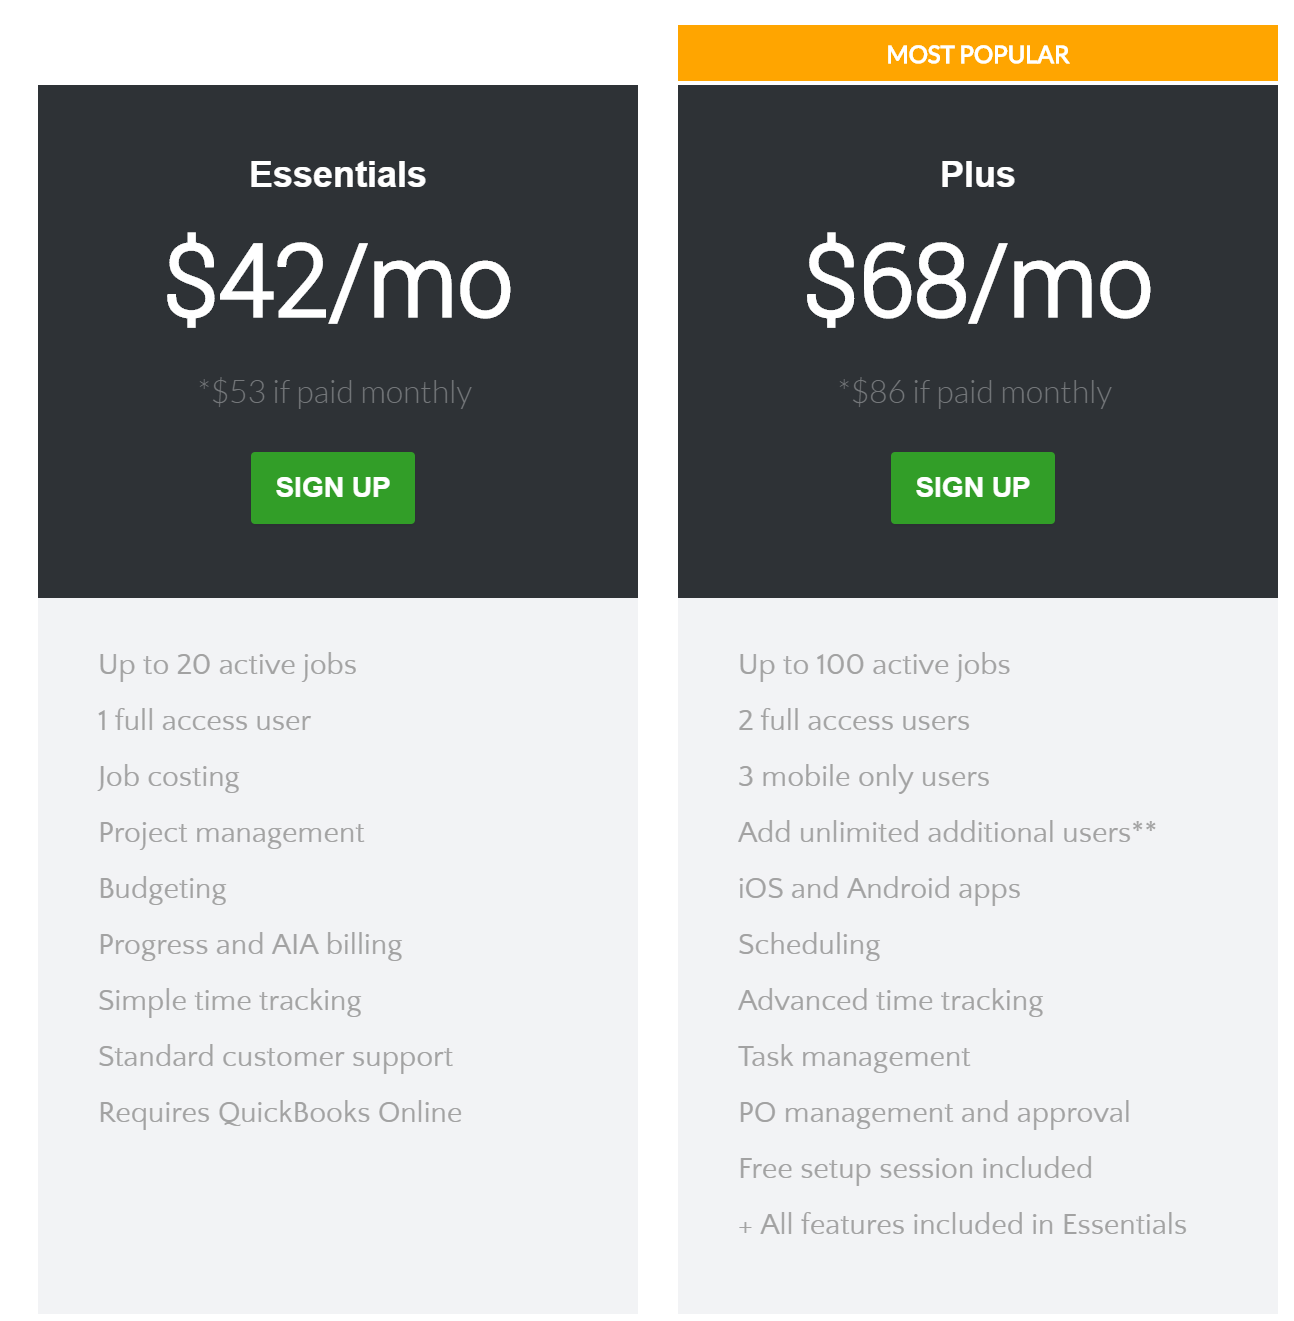 Pricing_essentials Knowify - The Essentials Plan